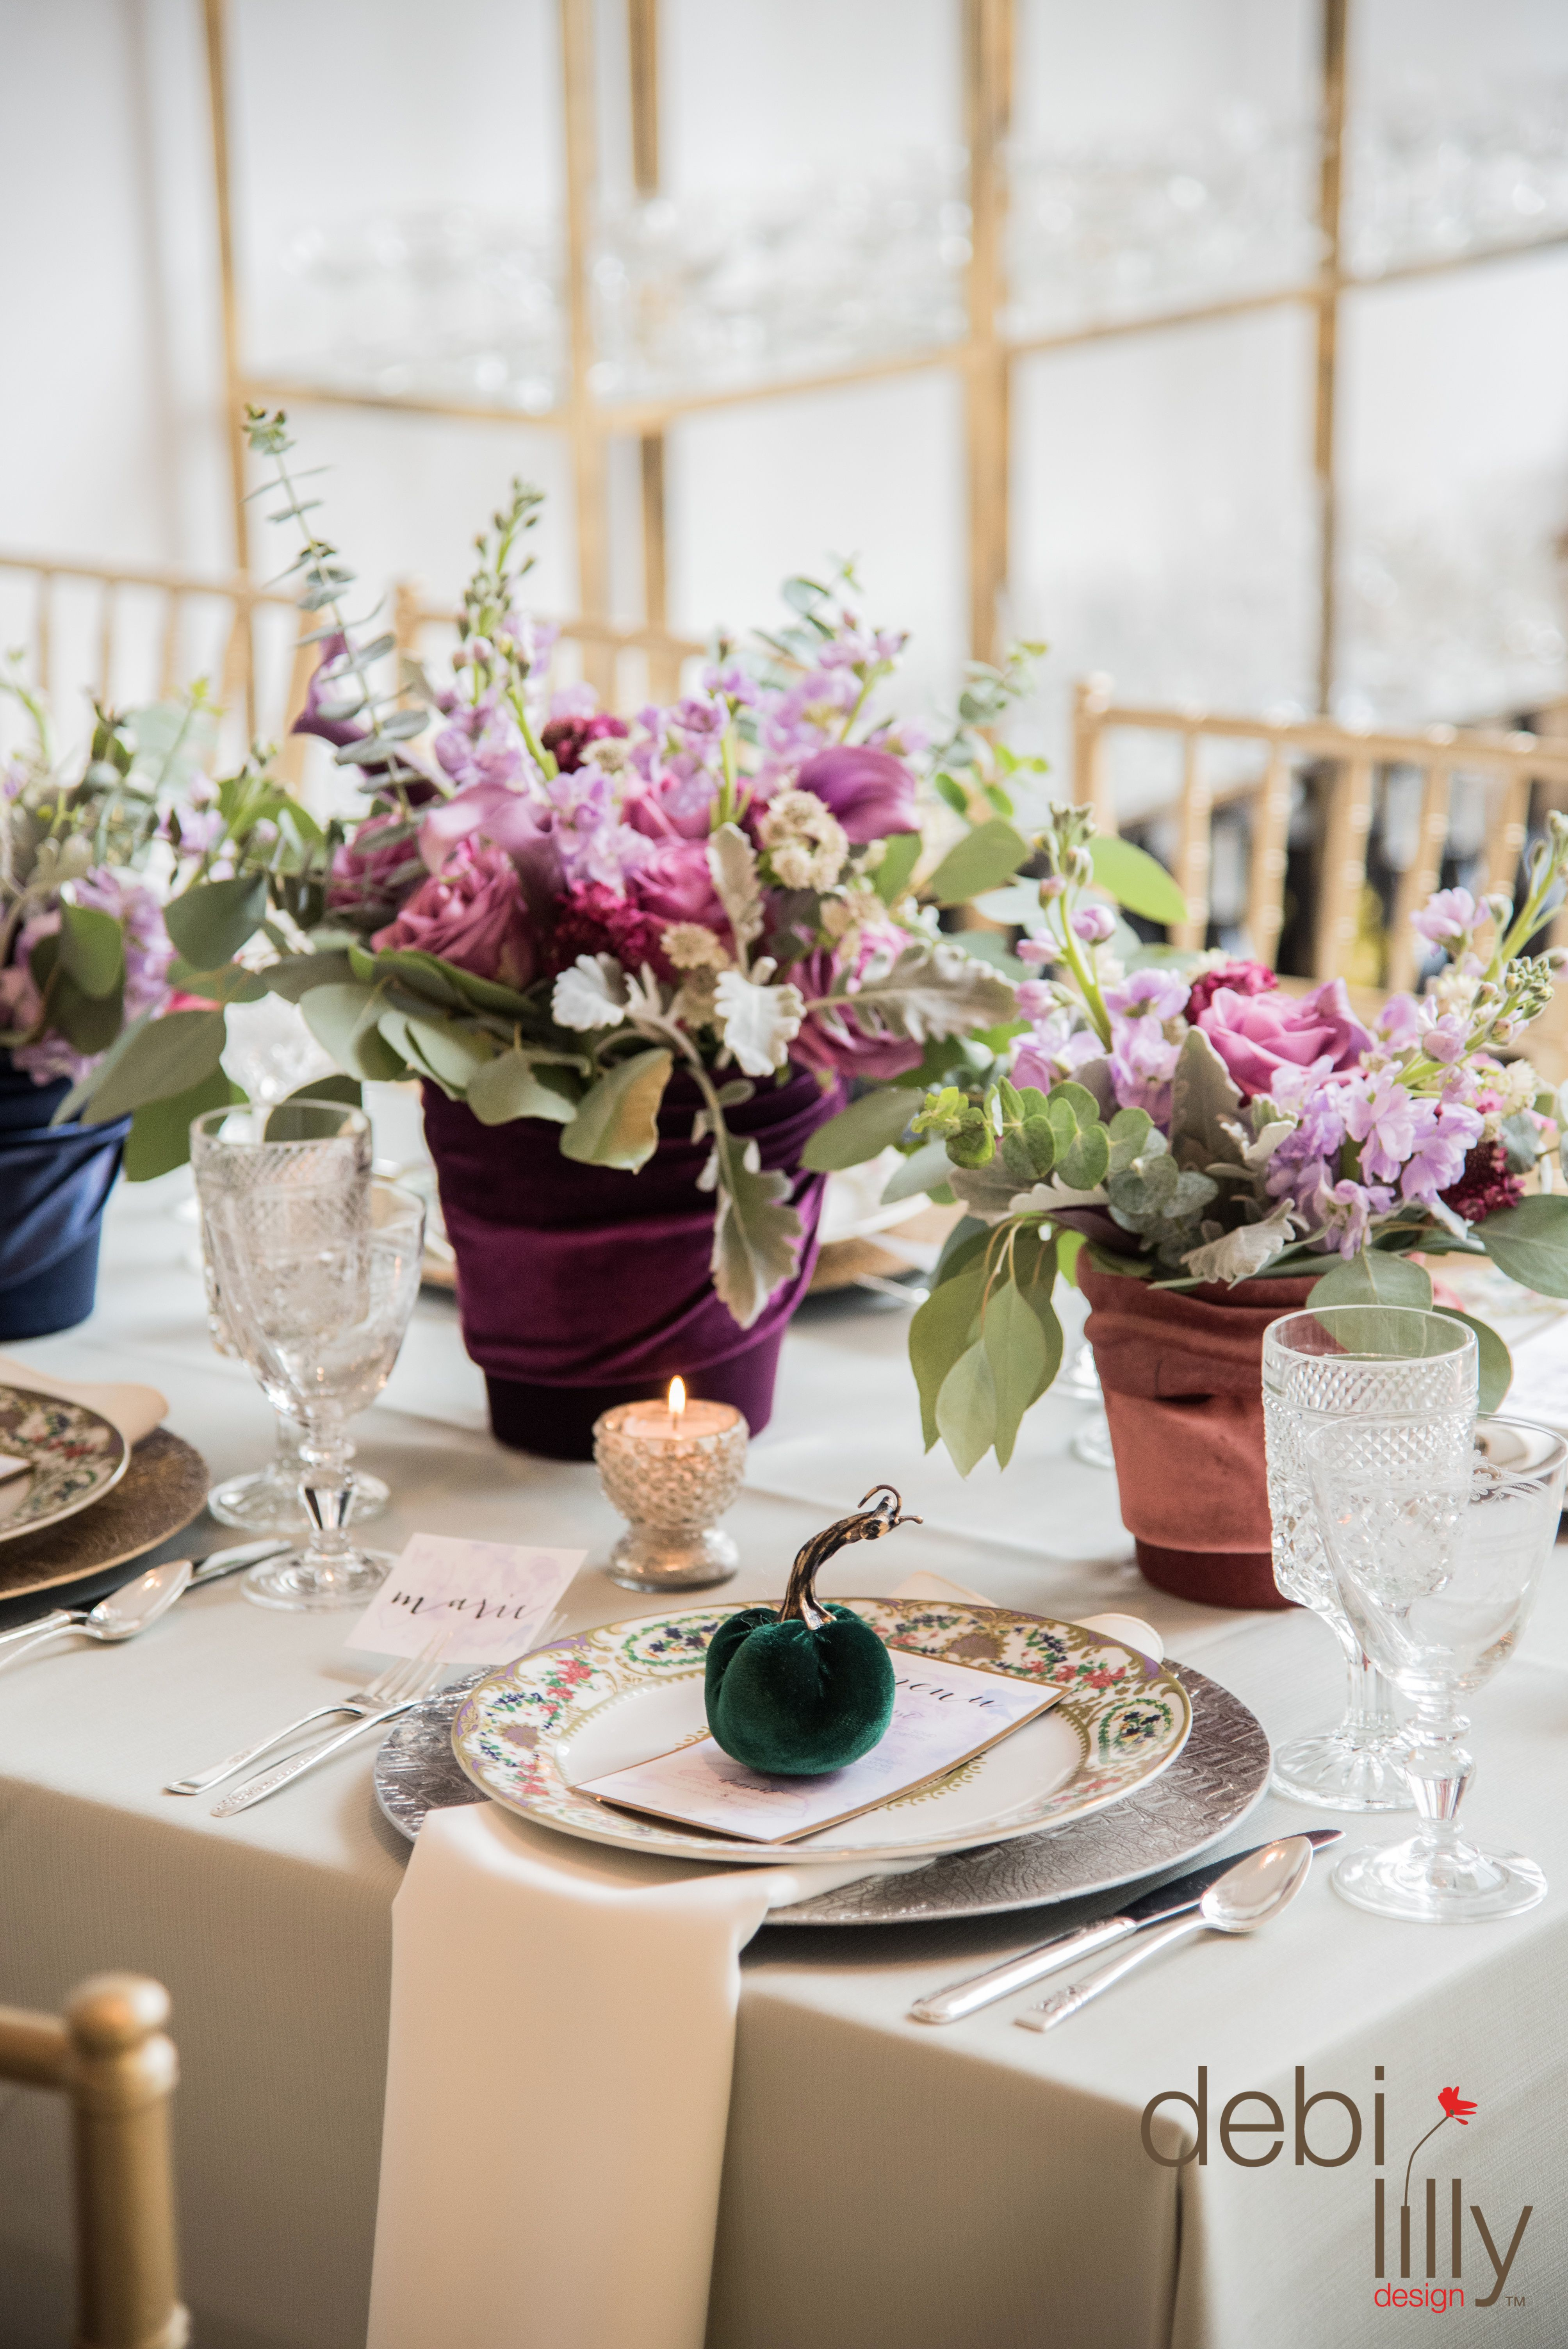 Dress up your run of the mill dinner party with